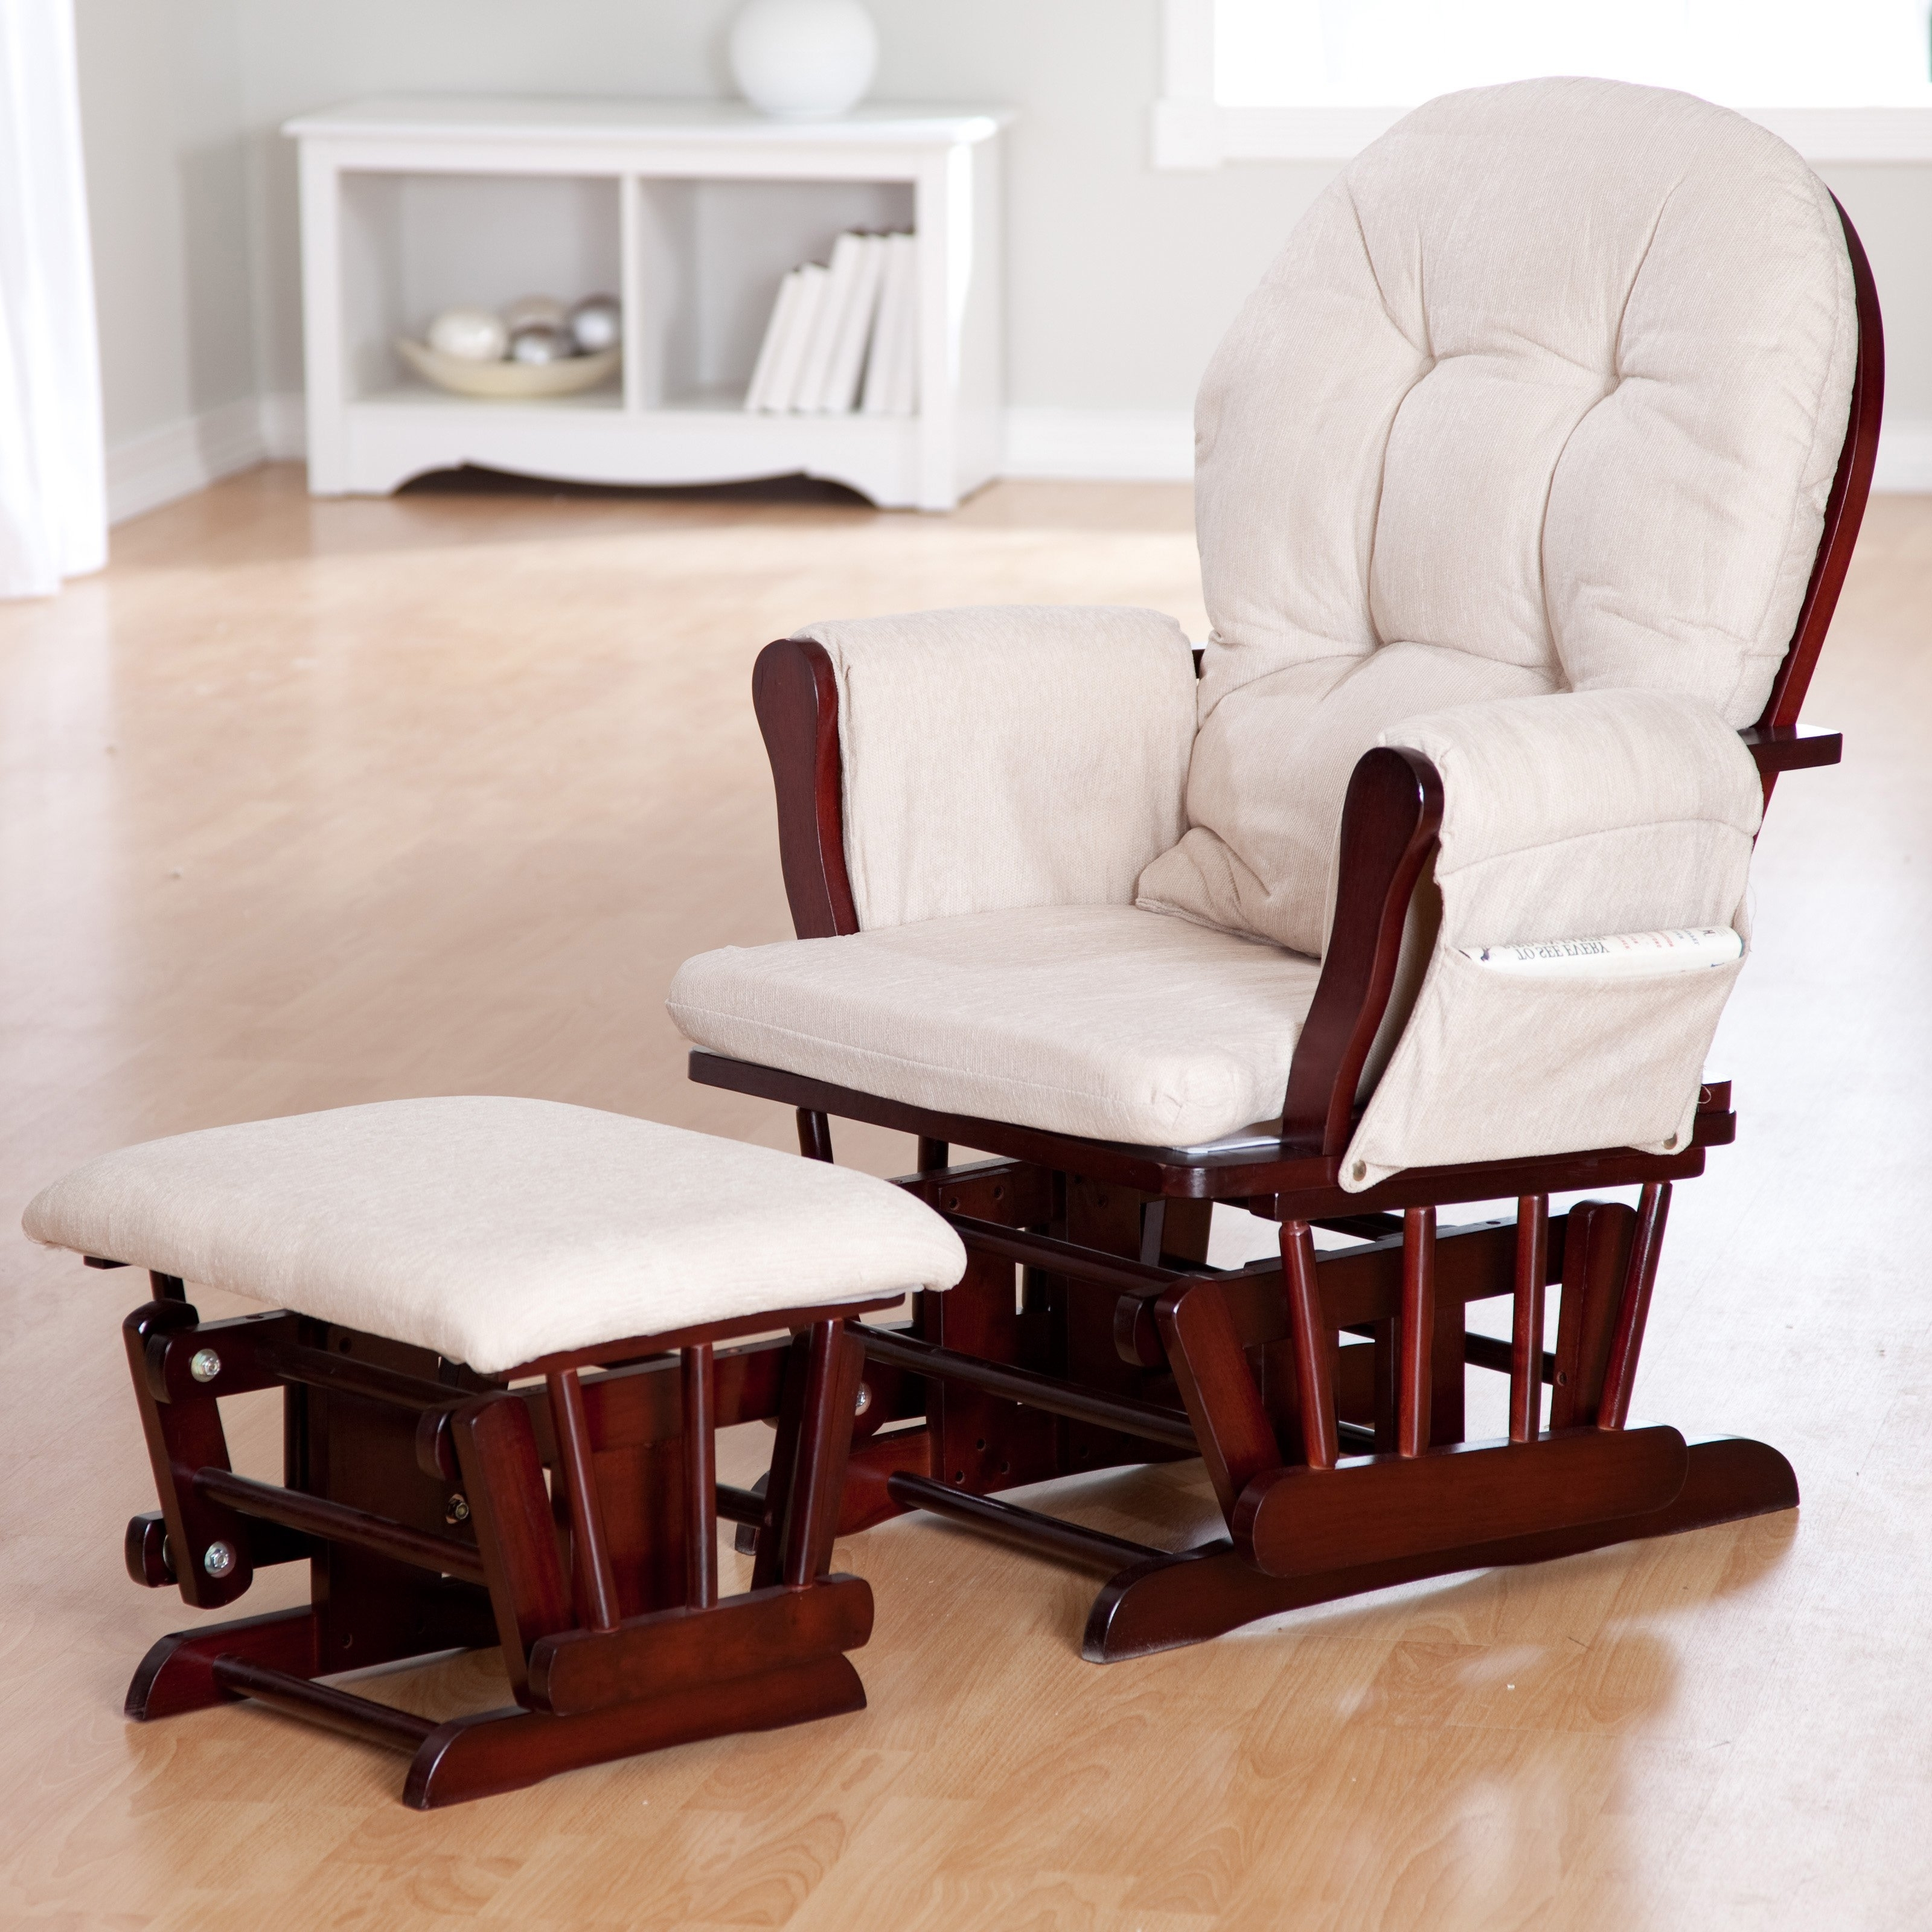 Rocking Chairs With Footstool With Regard To Current Ottomans : Upholstered Rocking Chair For Nursery Glider And Recliner (View 5 of 15)